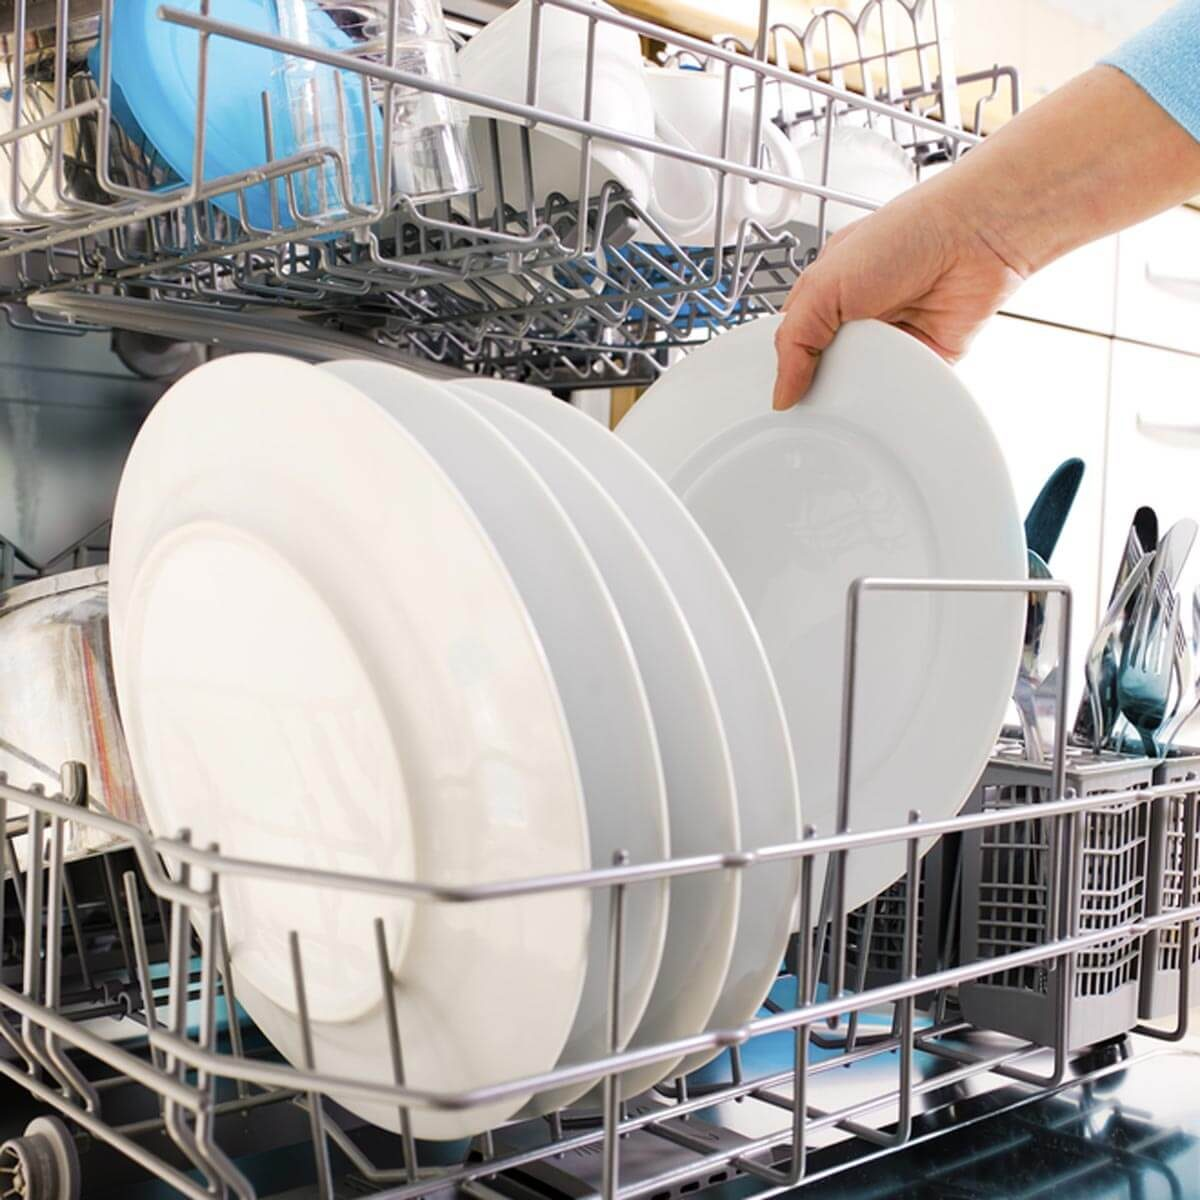 shutterstock_53629048 dishwasher clean plates